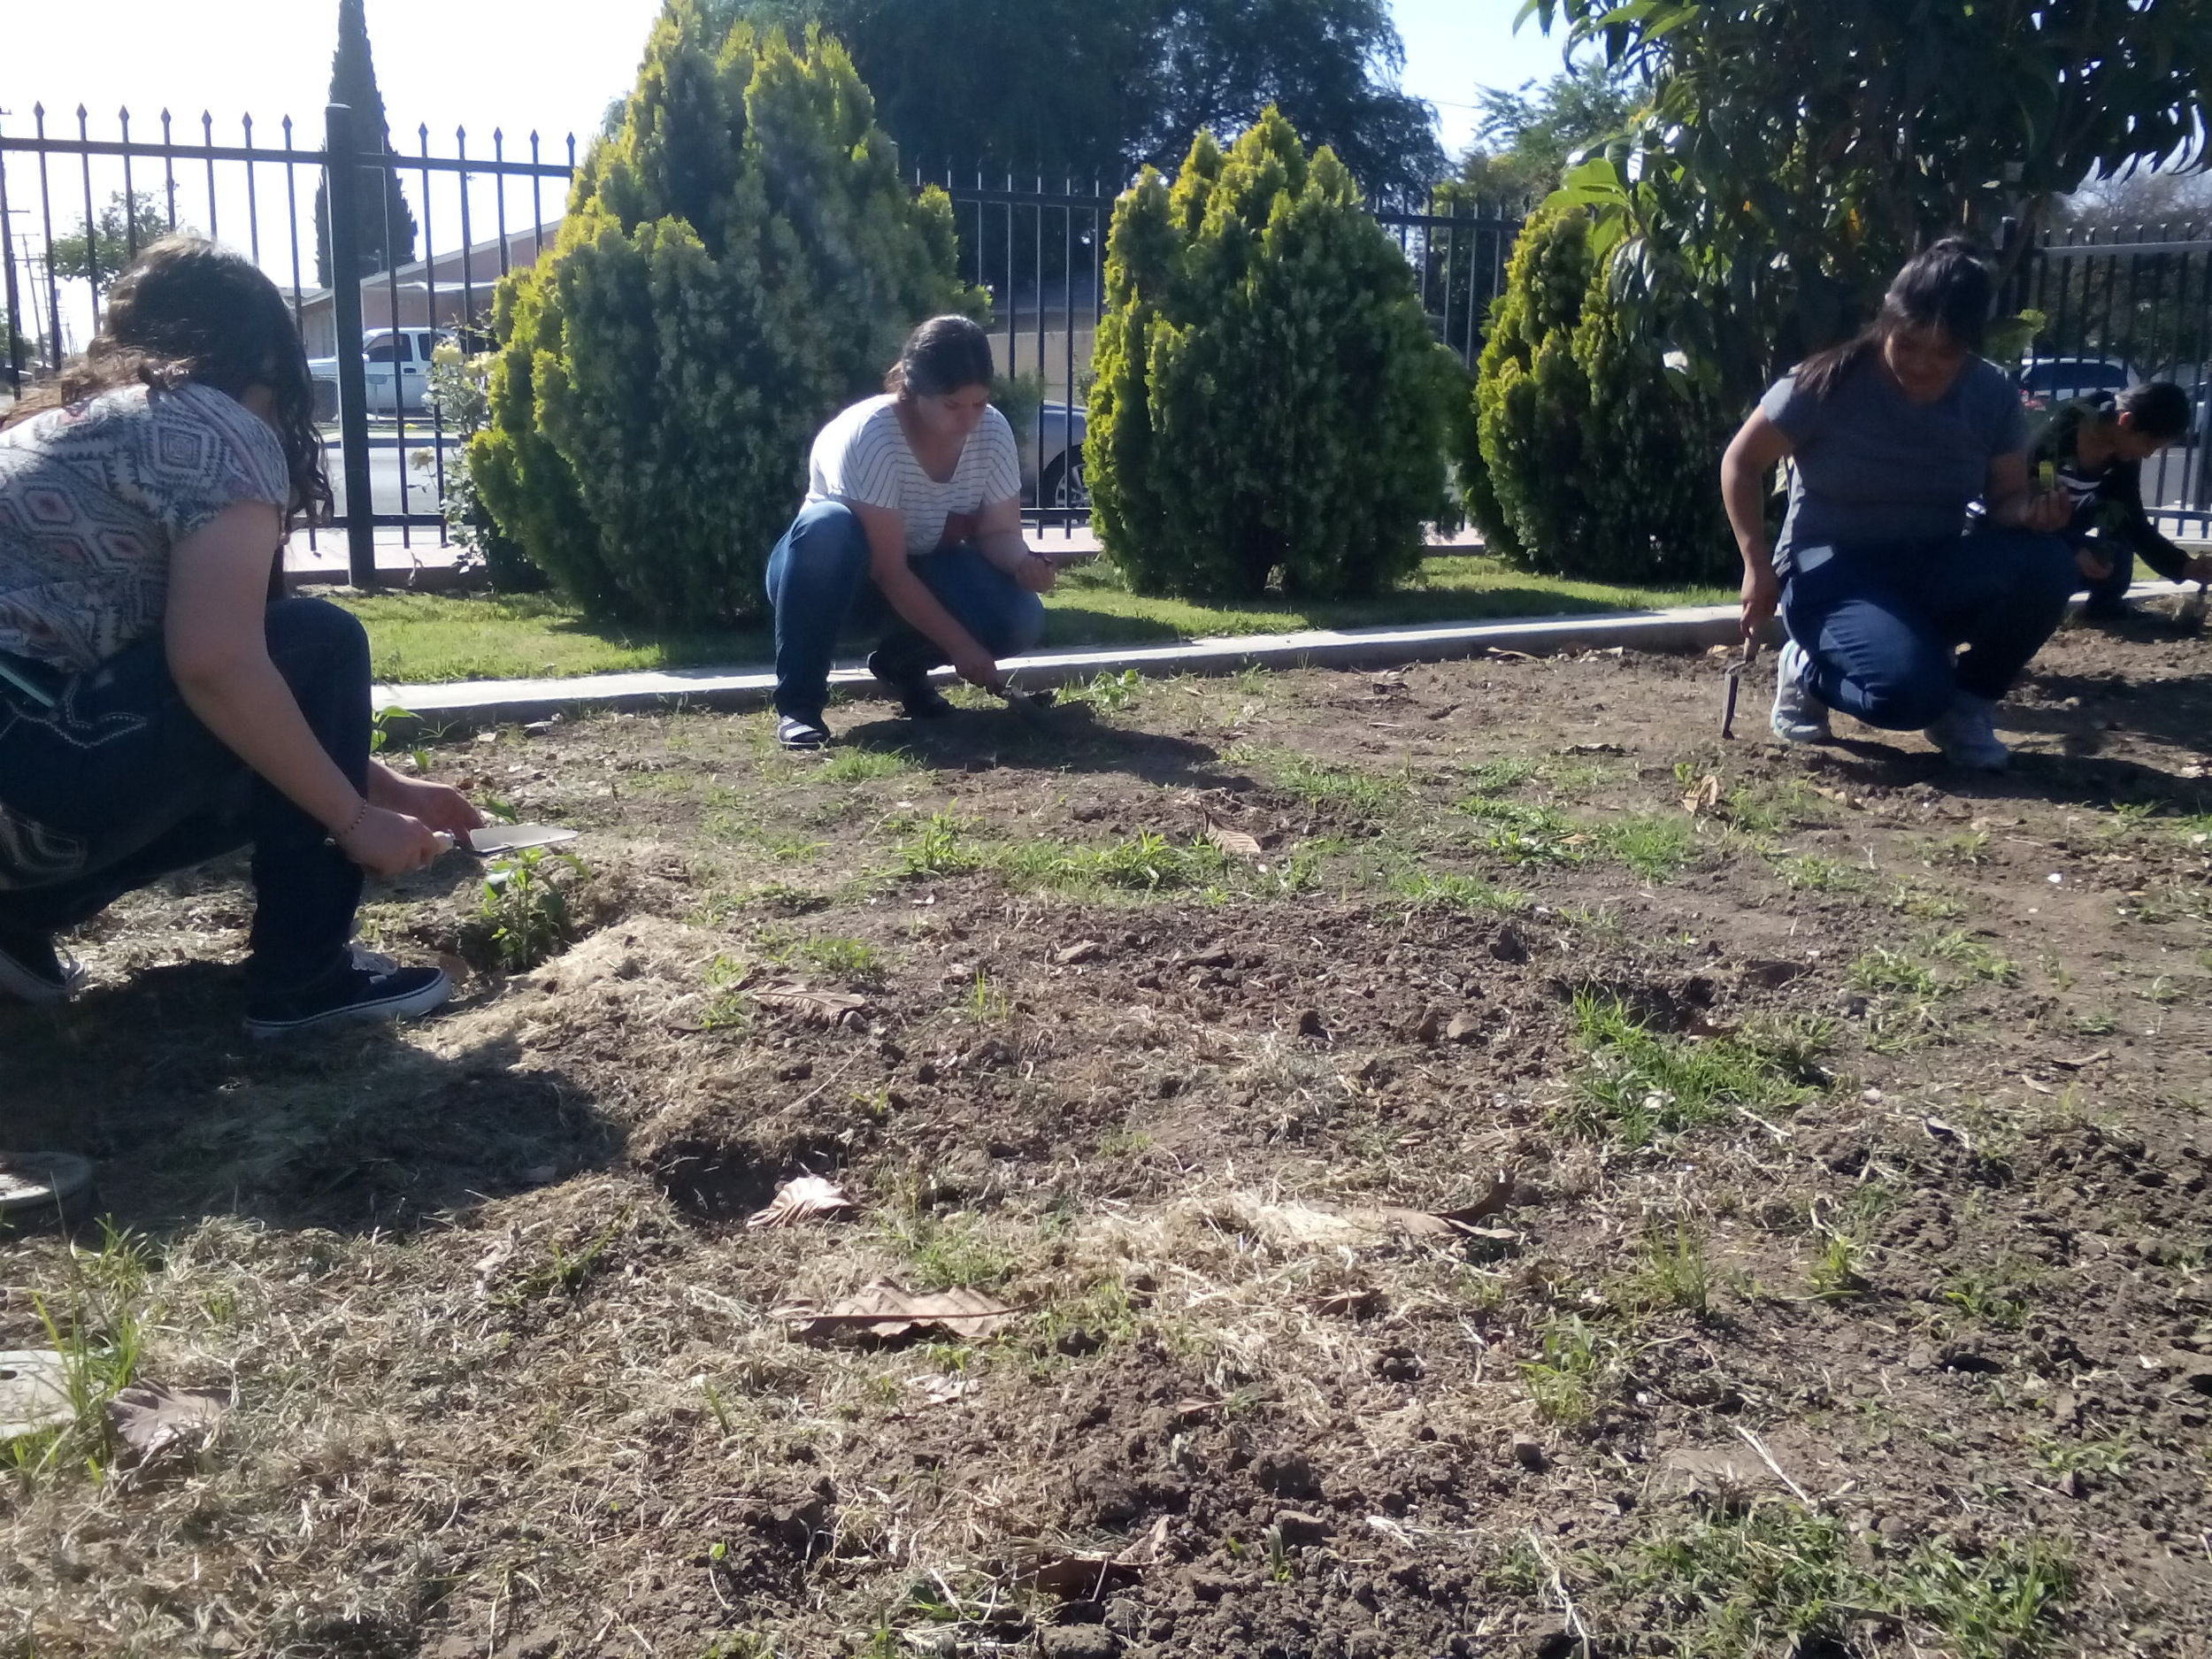 In celebration of Arbor Day, Madera Youth Leaders and kids from the Madera Child Development Center preschool planted their peas and peppers in two plots at our community garden. A group of six volunteers from Madera Collegealso joined us to pull weeds out of the plot along Lake street.